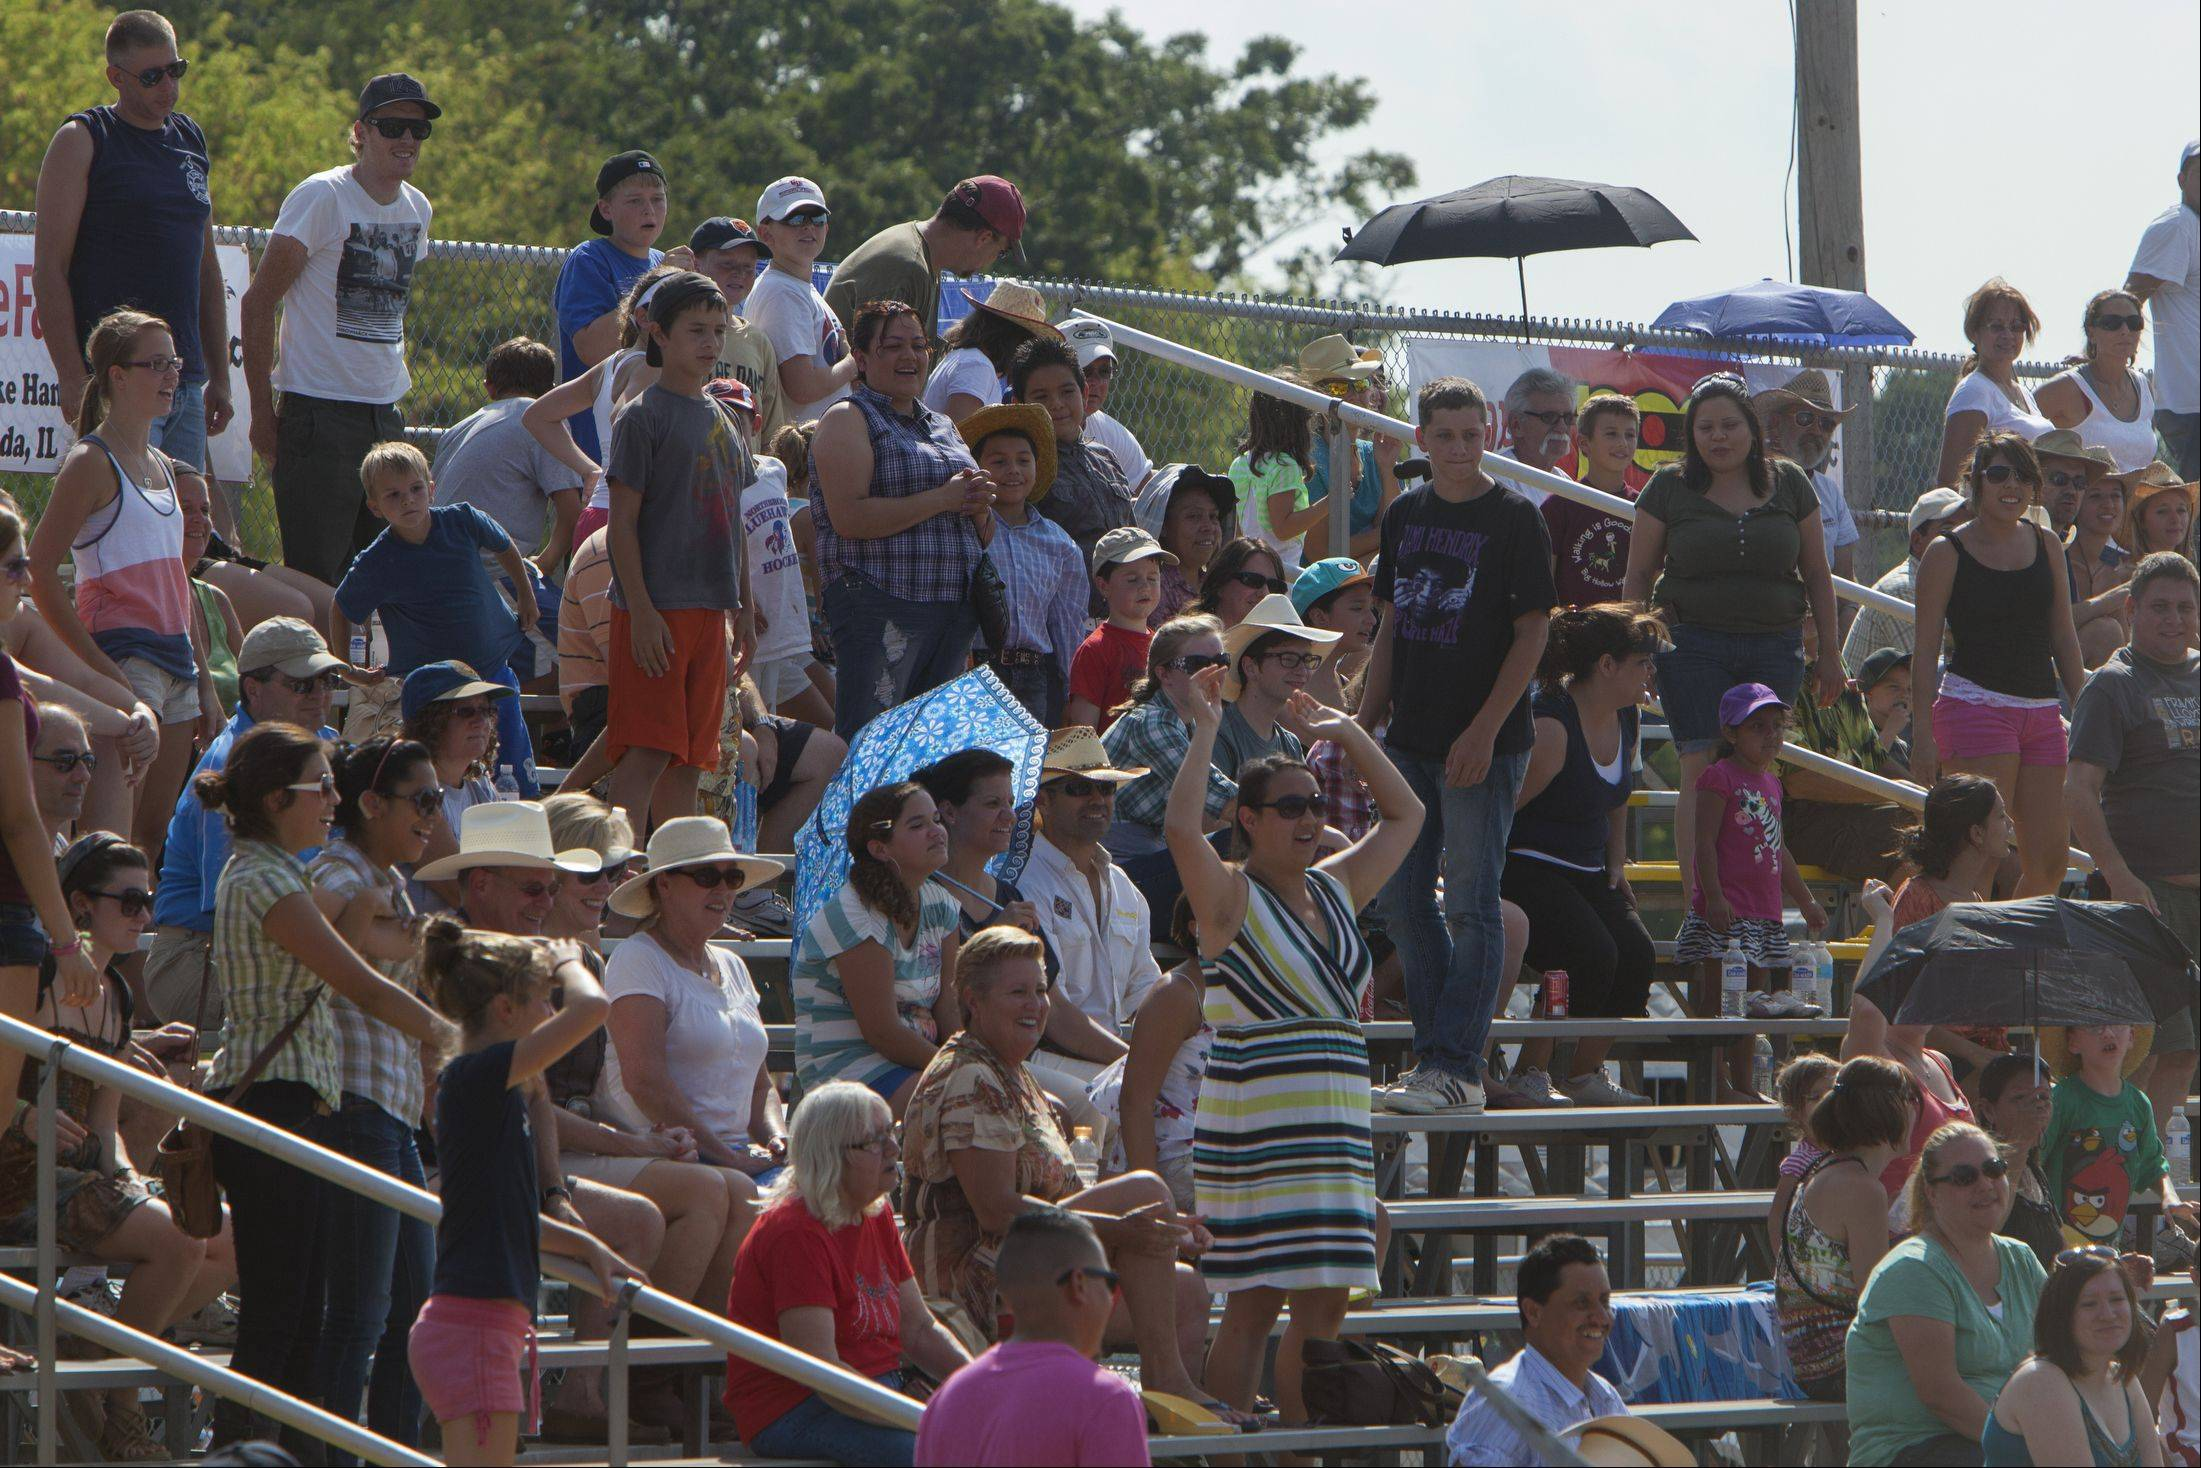 Despite temperatures in the id 90s, crowds enjoy the 49th IPRA Championship Rodeo at the Golden Oaks Rodeo Grounds in Wauconda, hosted by the Wauconda Chamber of Commerce.